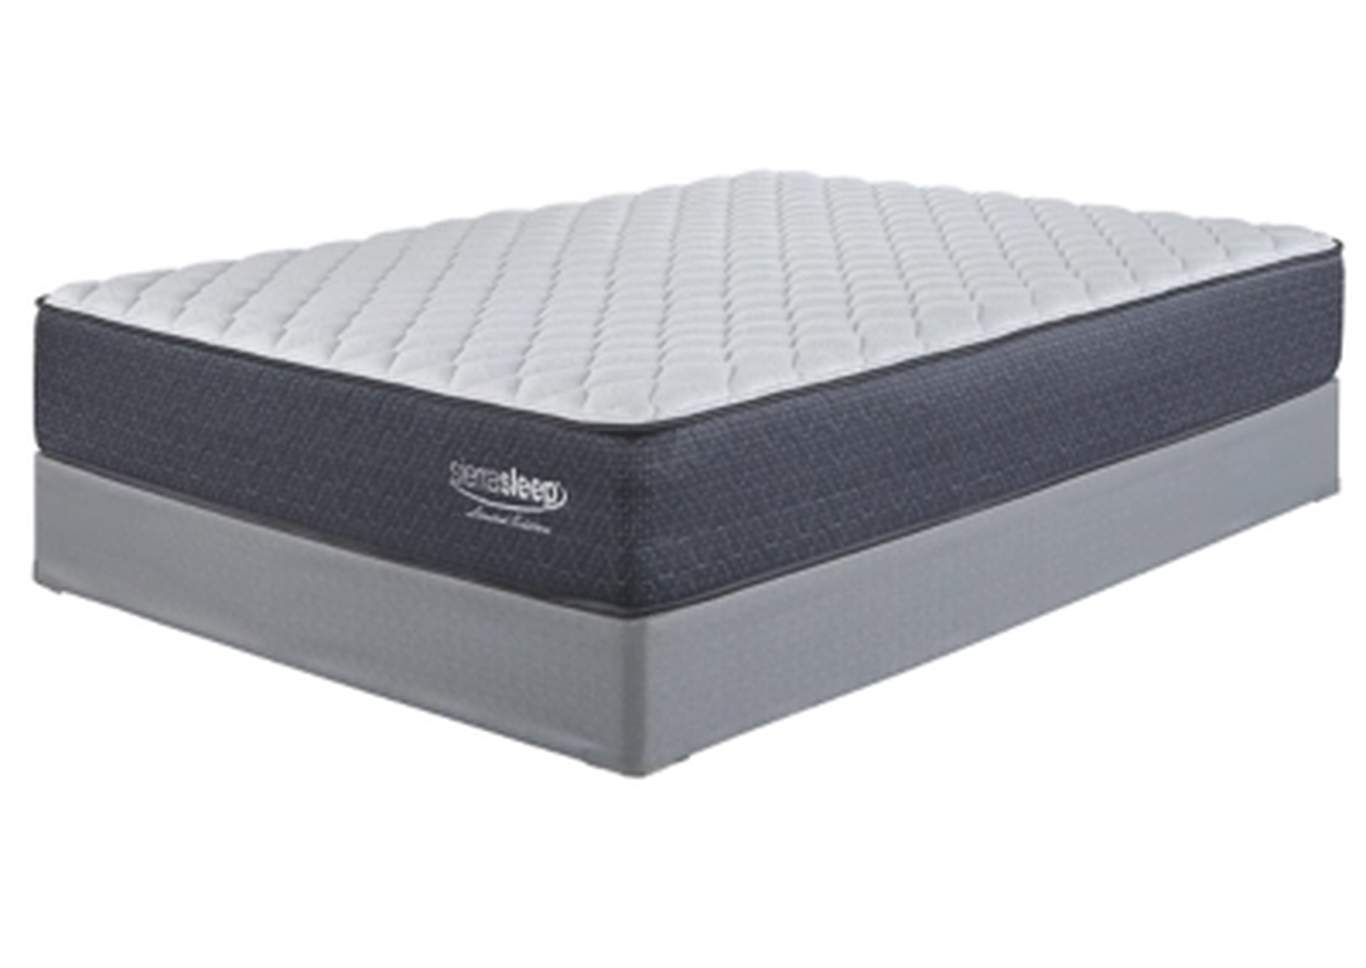 Limited Edition Firm White Queen Mattress w/Foundation,Sierra Sleep